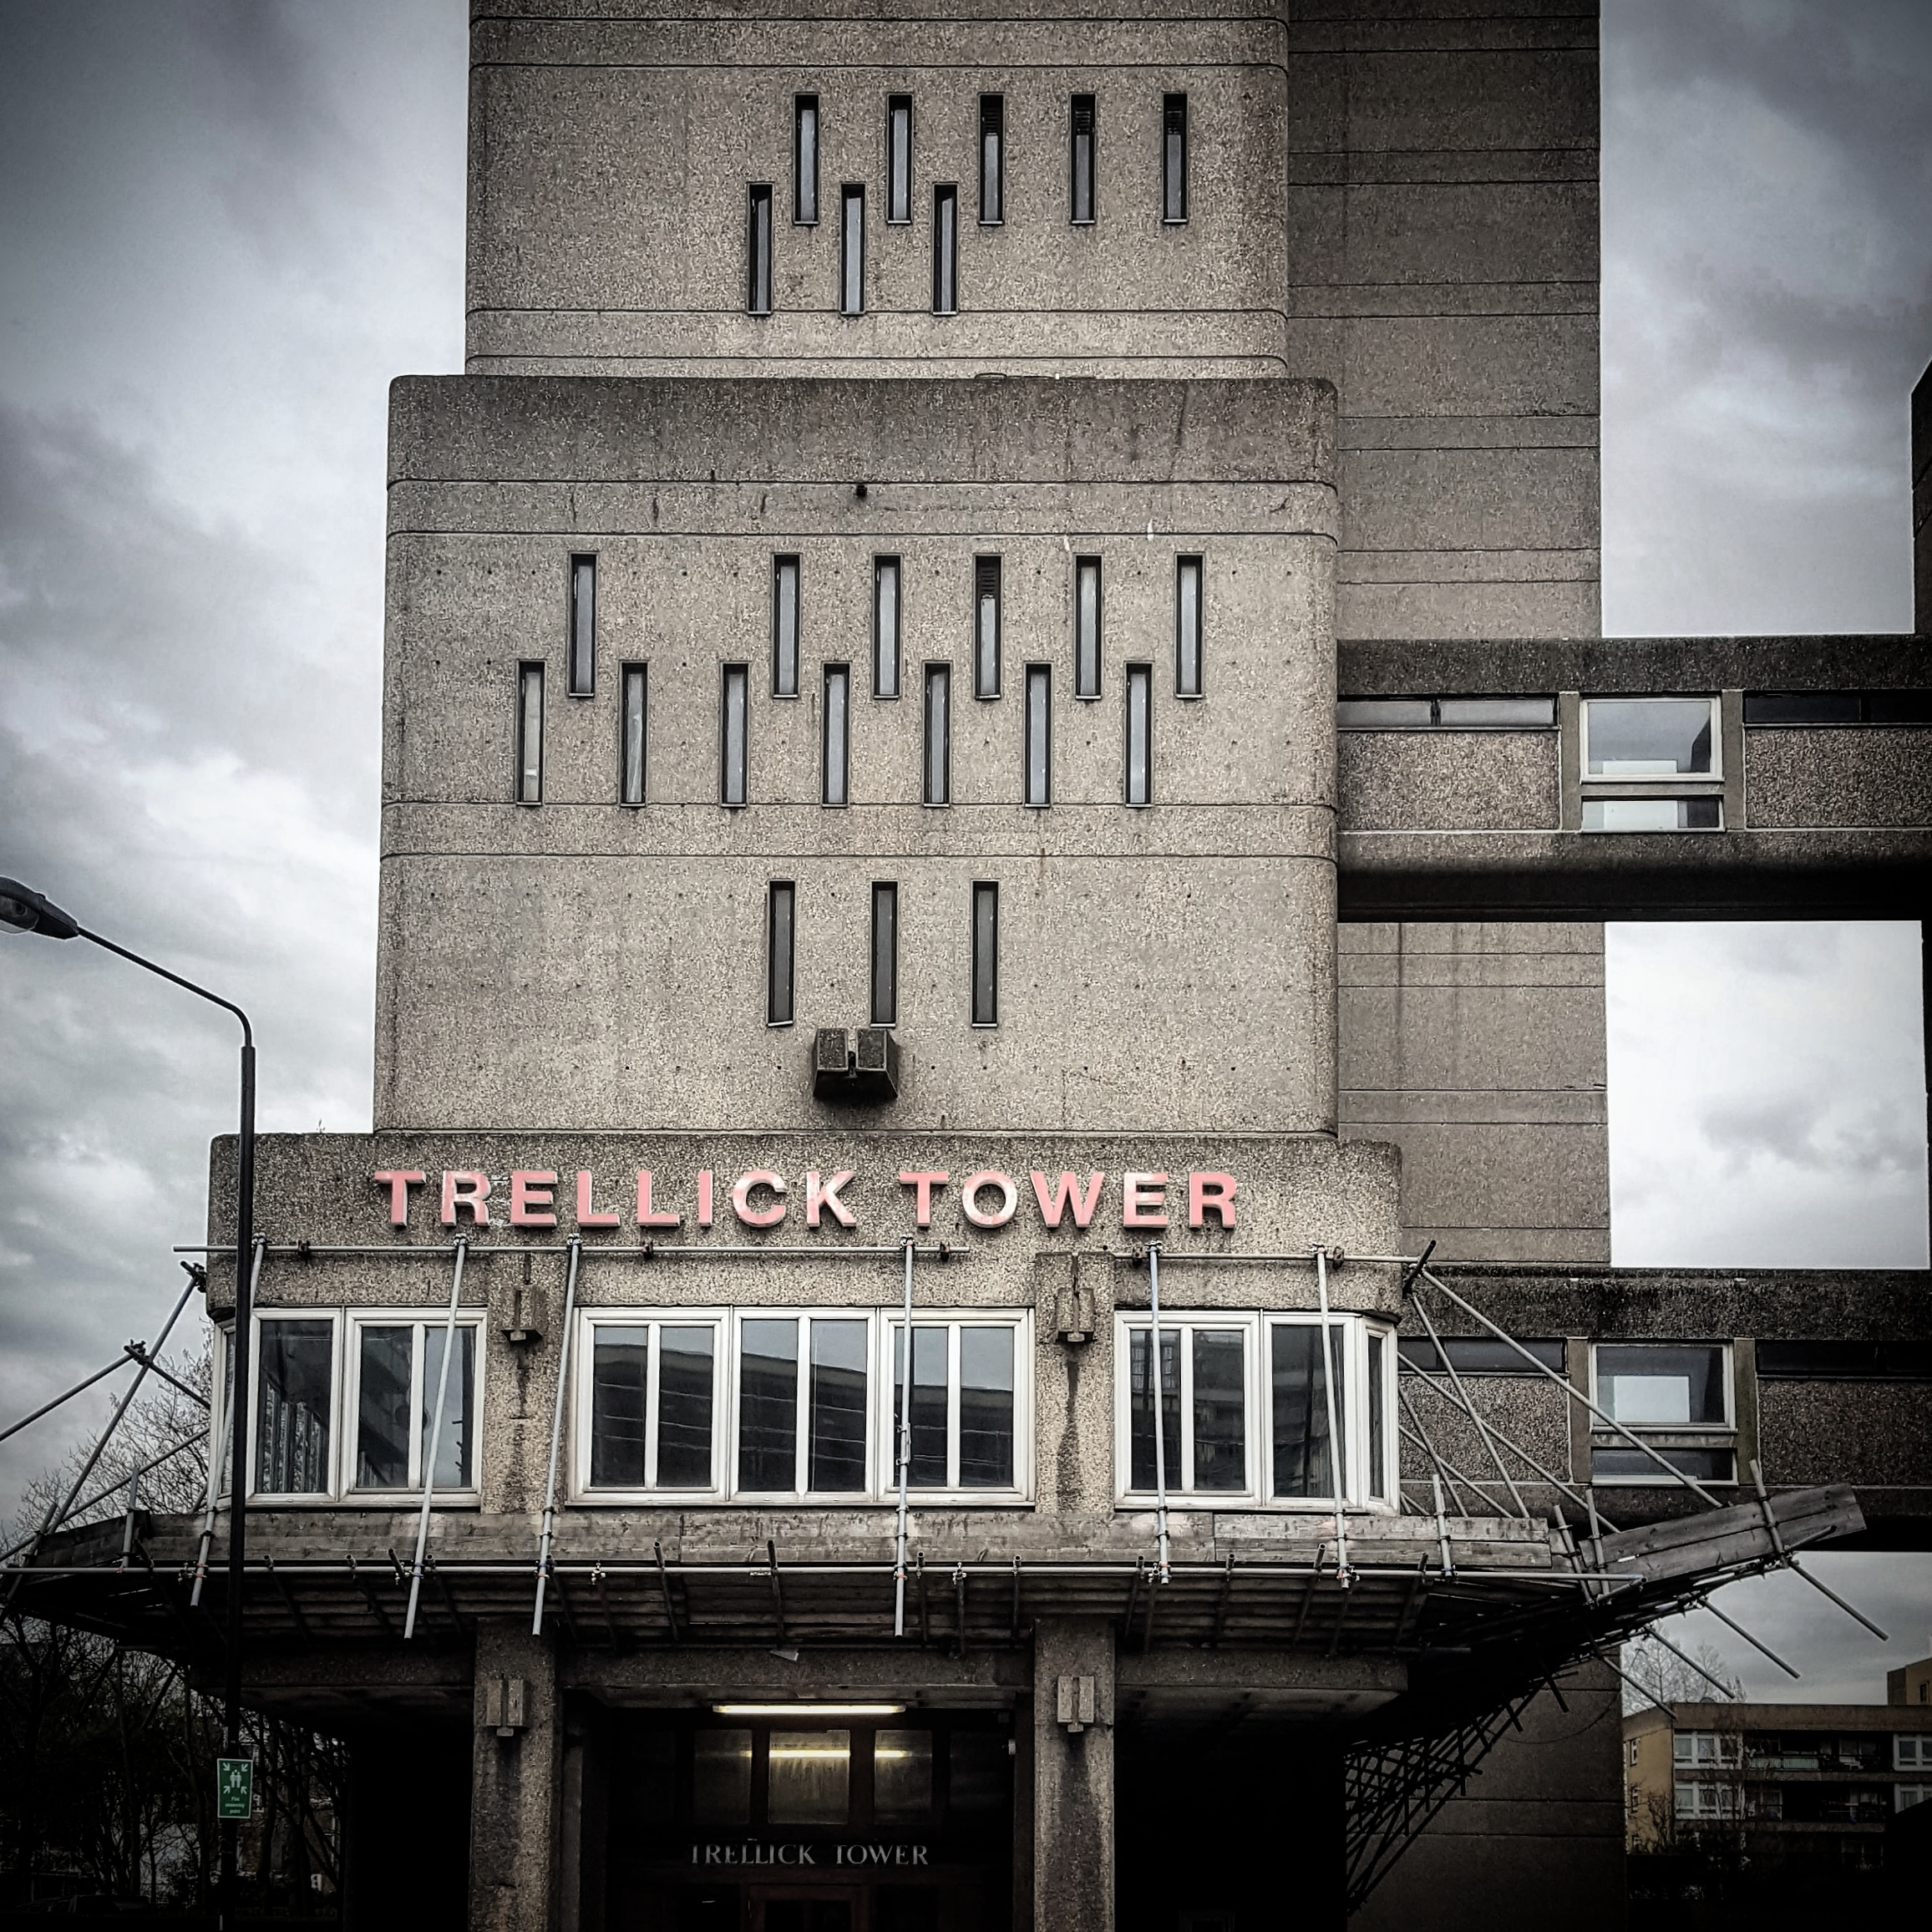 London Tower Block